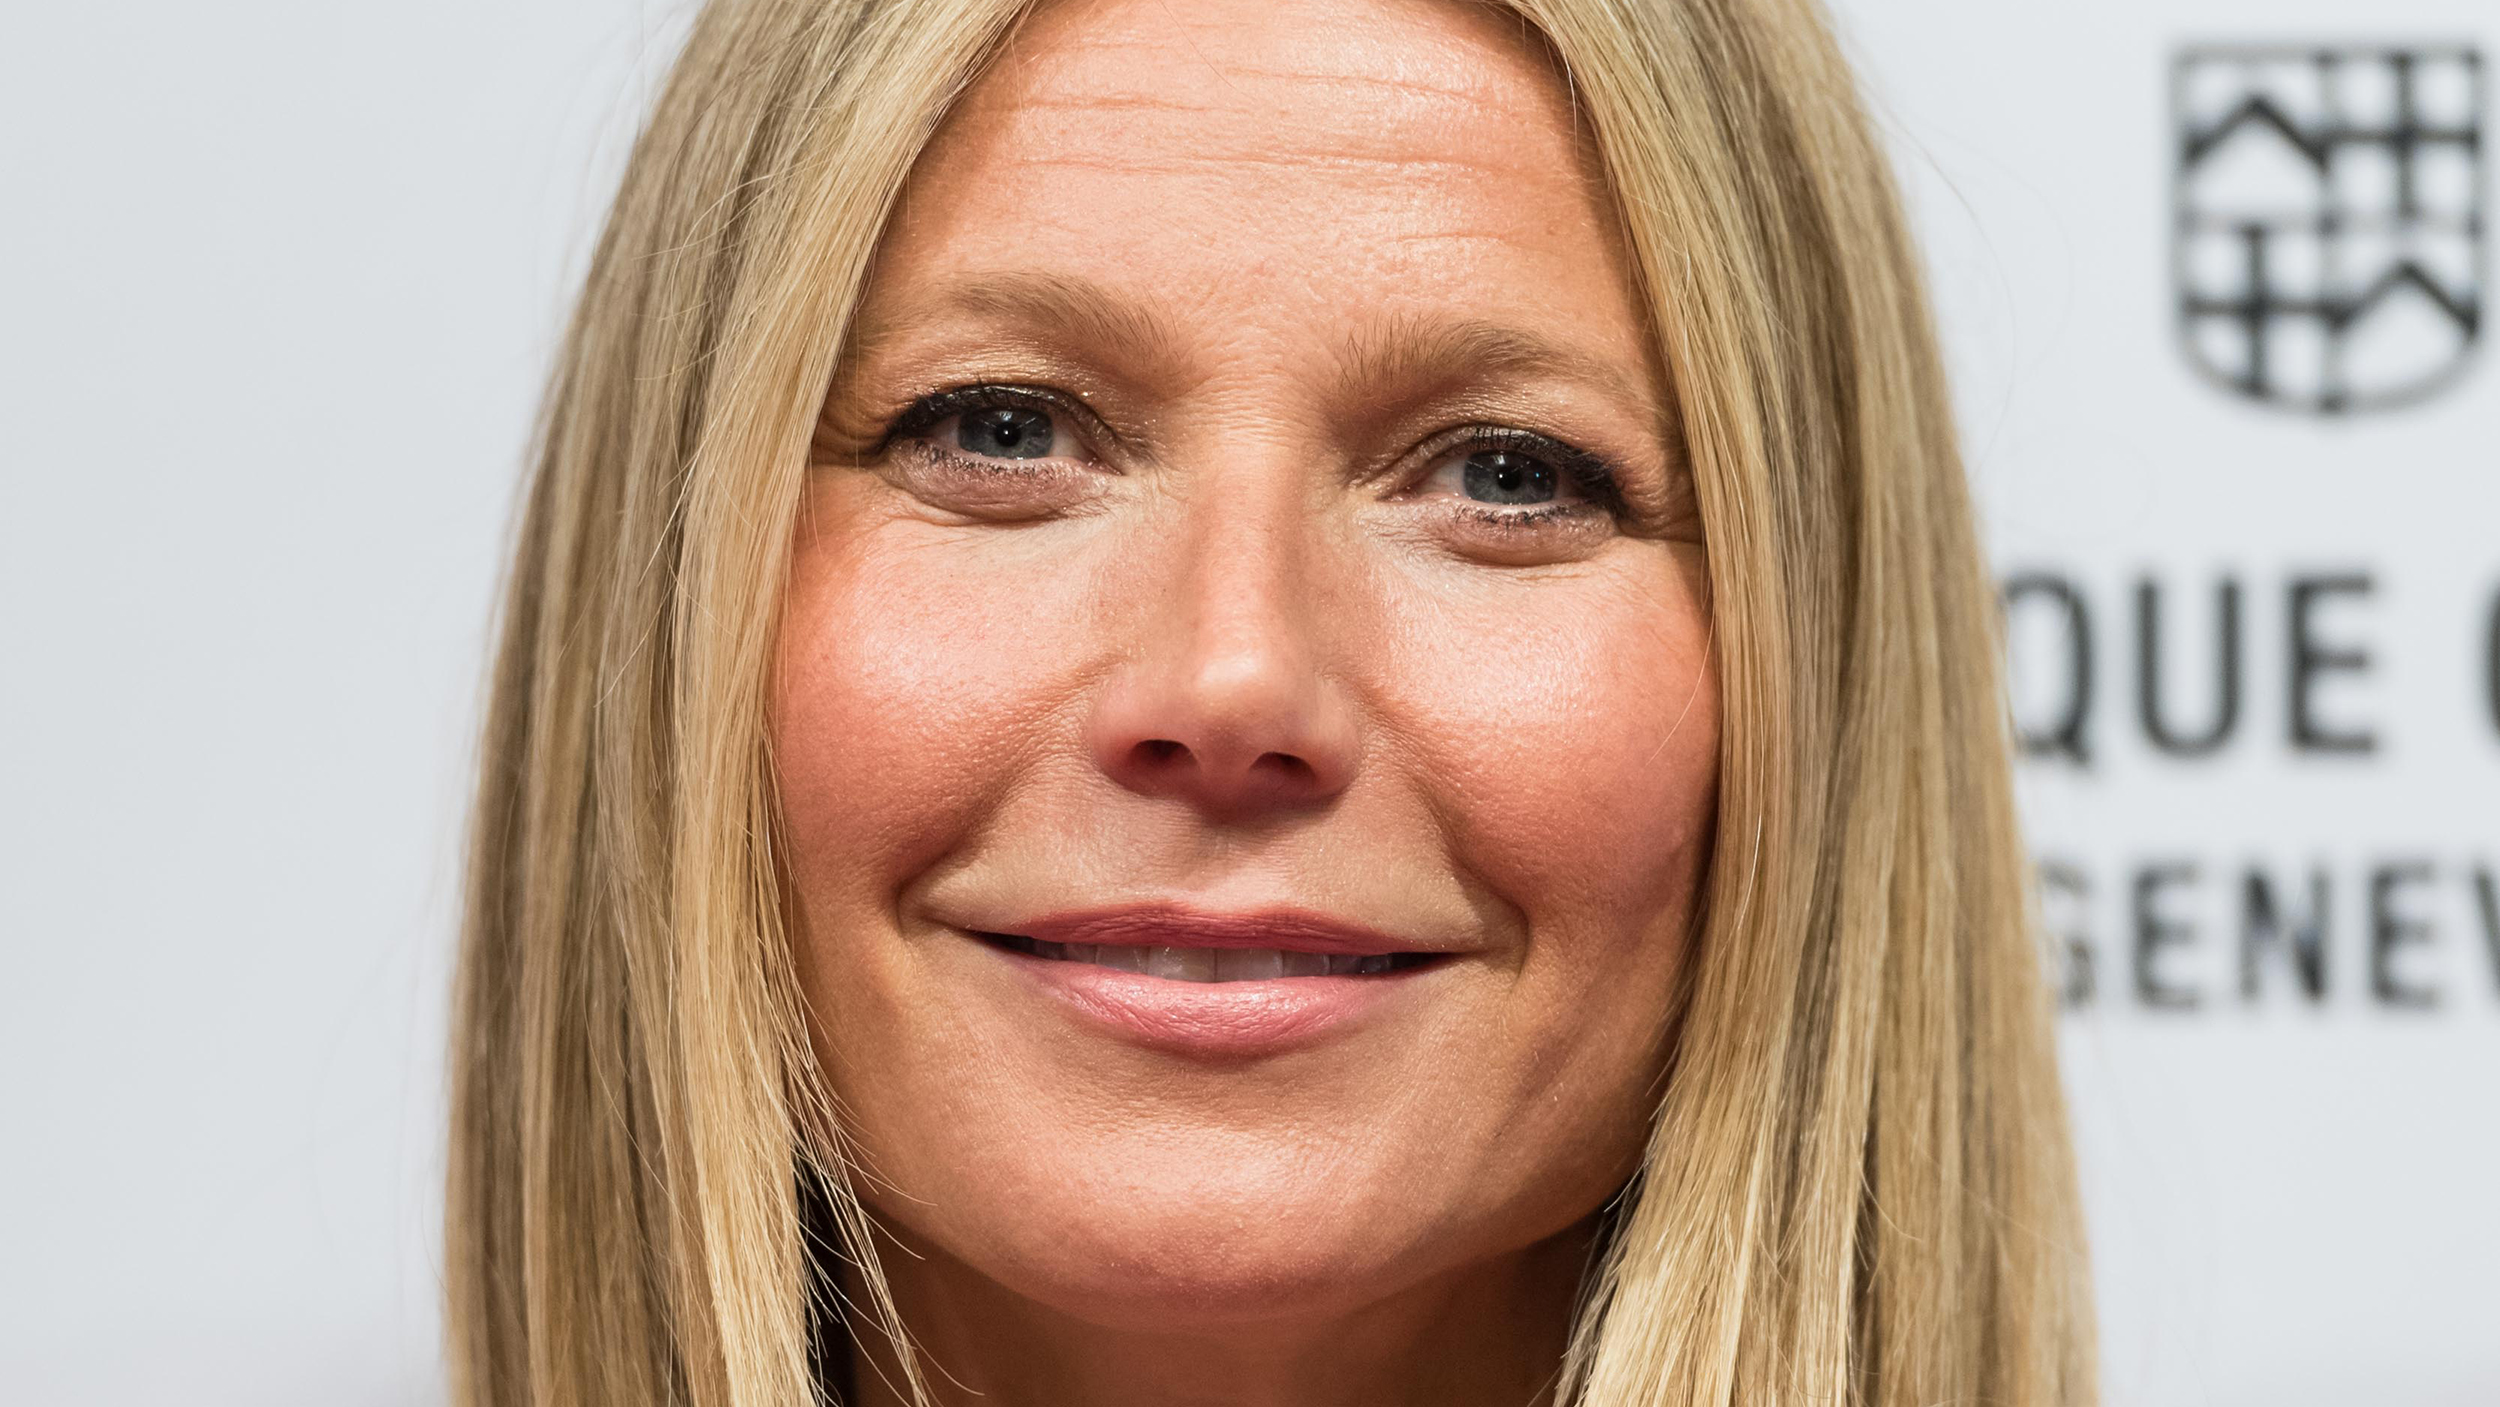 Fotos Gwyneth Paltrow nude photos 2019